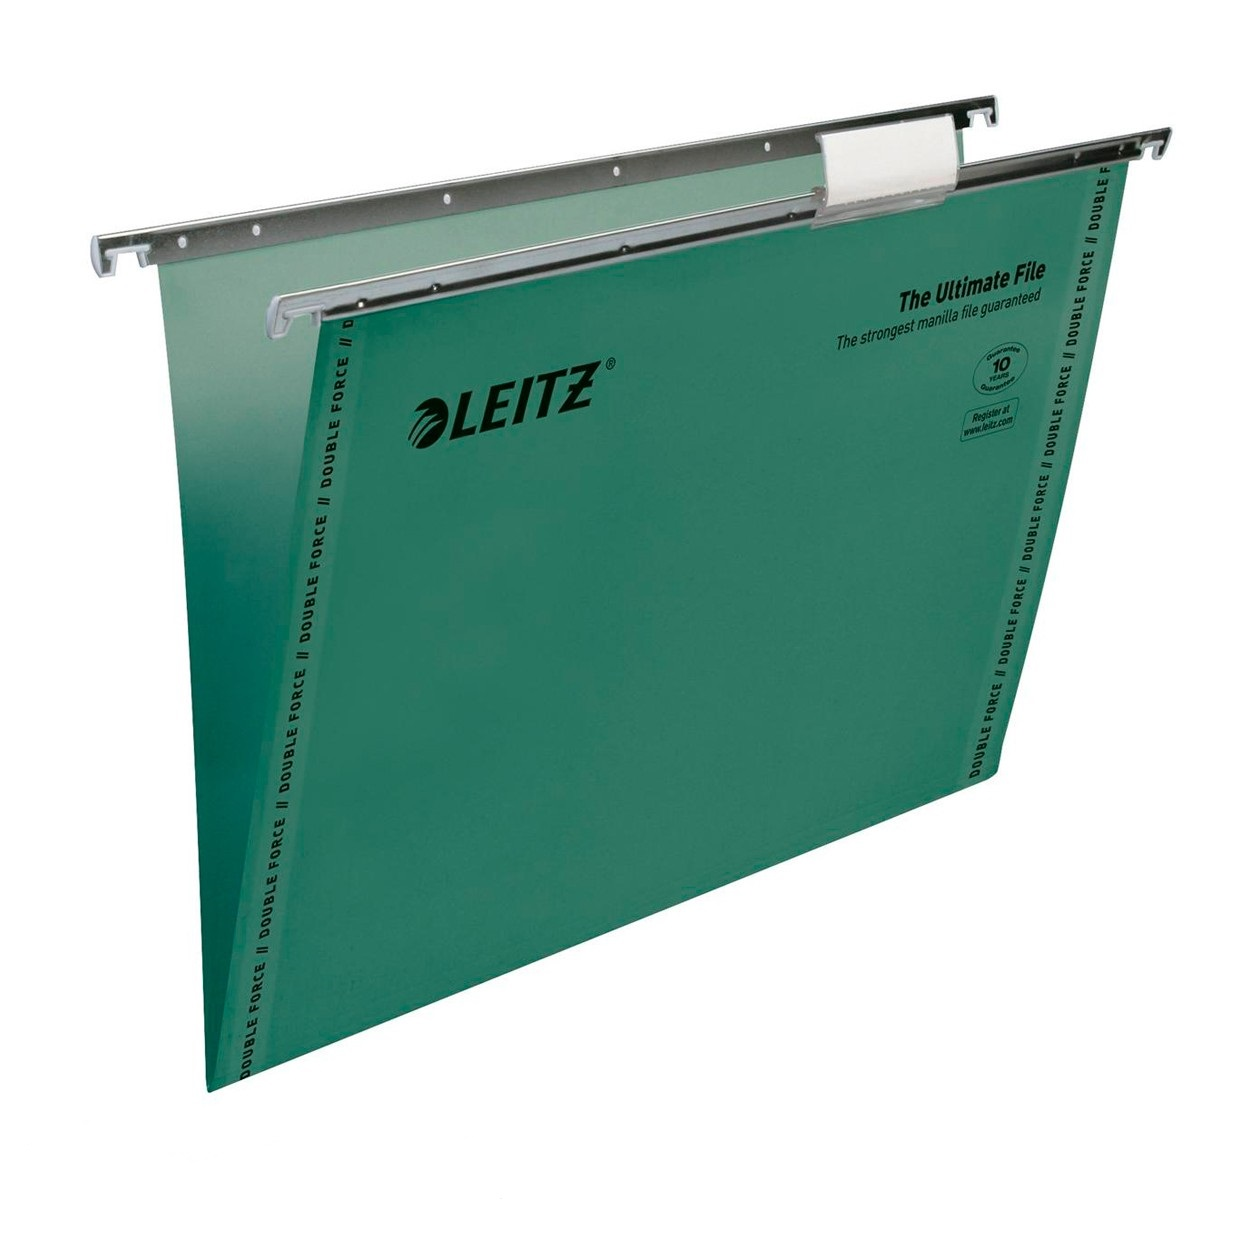 Suspension File Leitz Ultimate Suspension File F/S Green 7440055 (PK50)